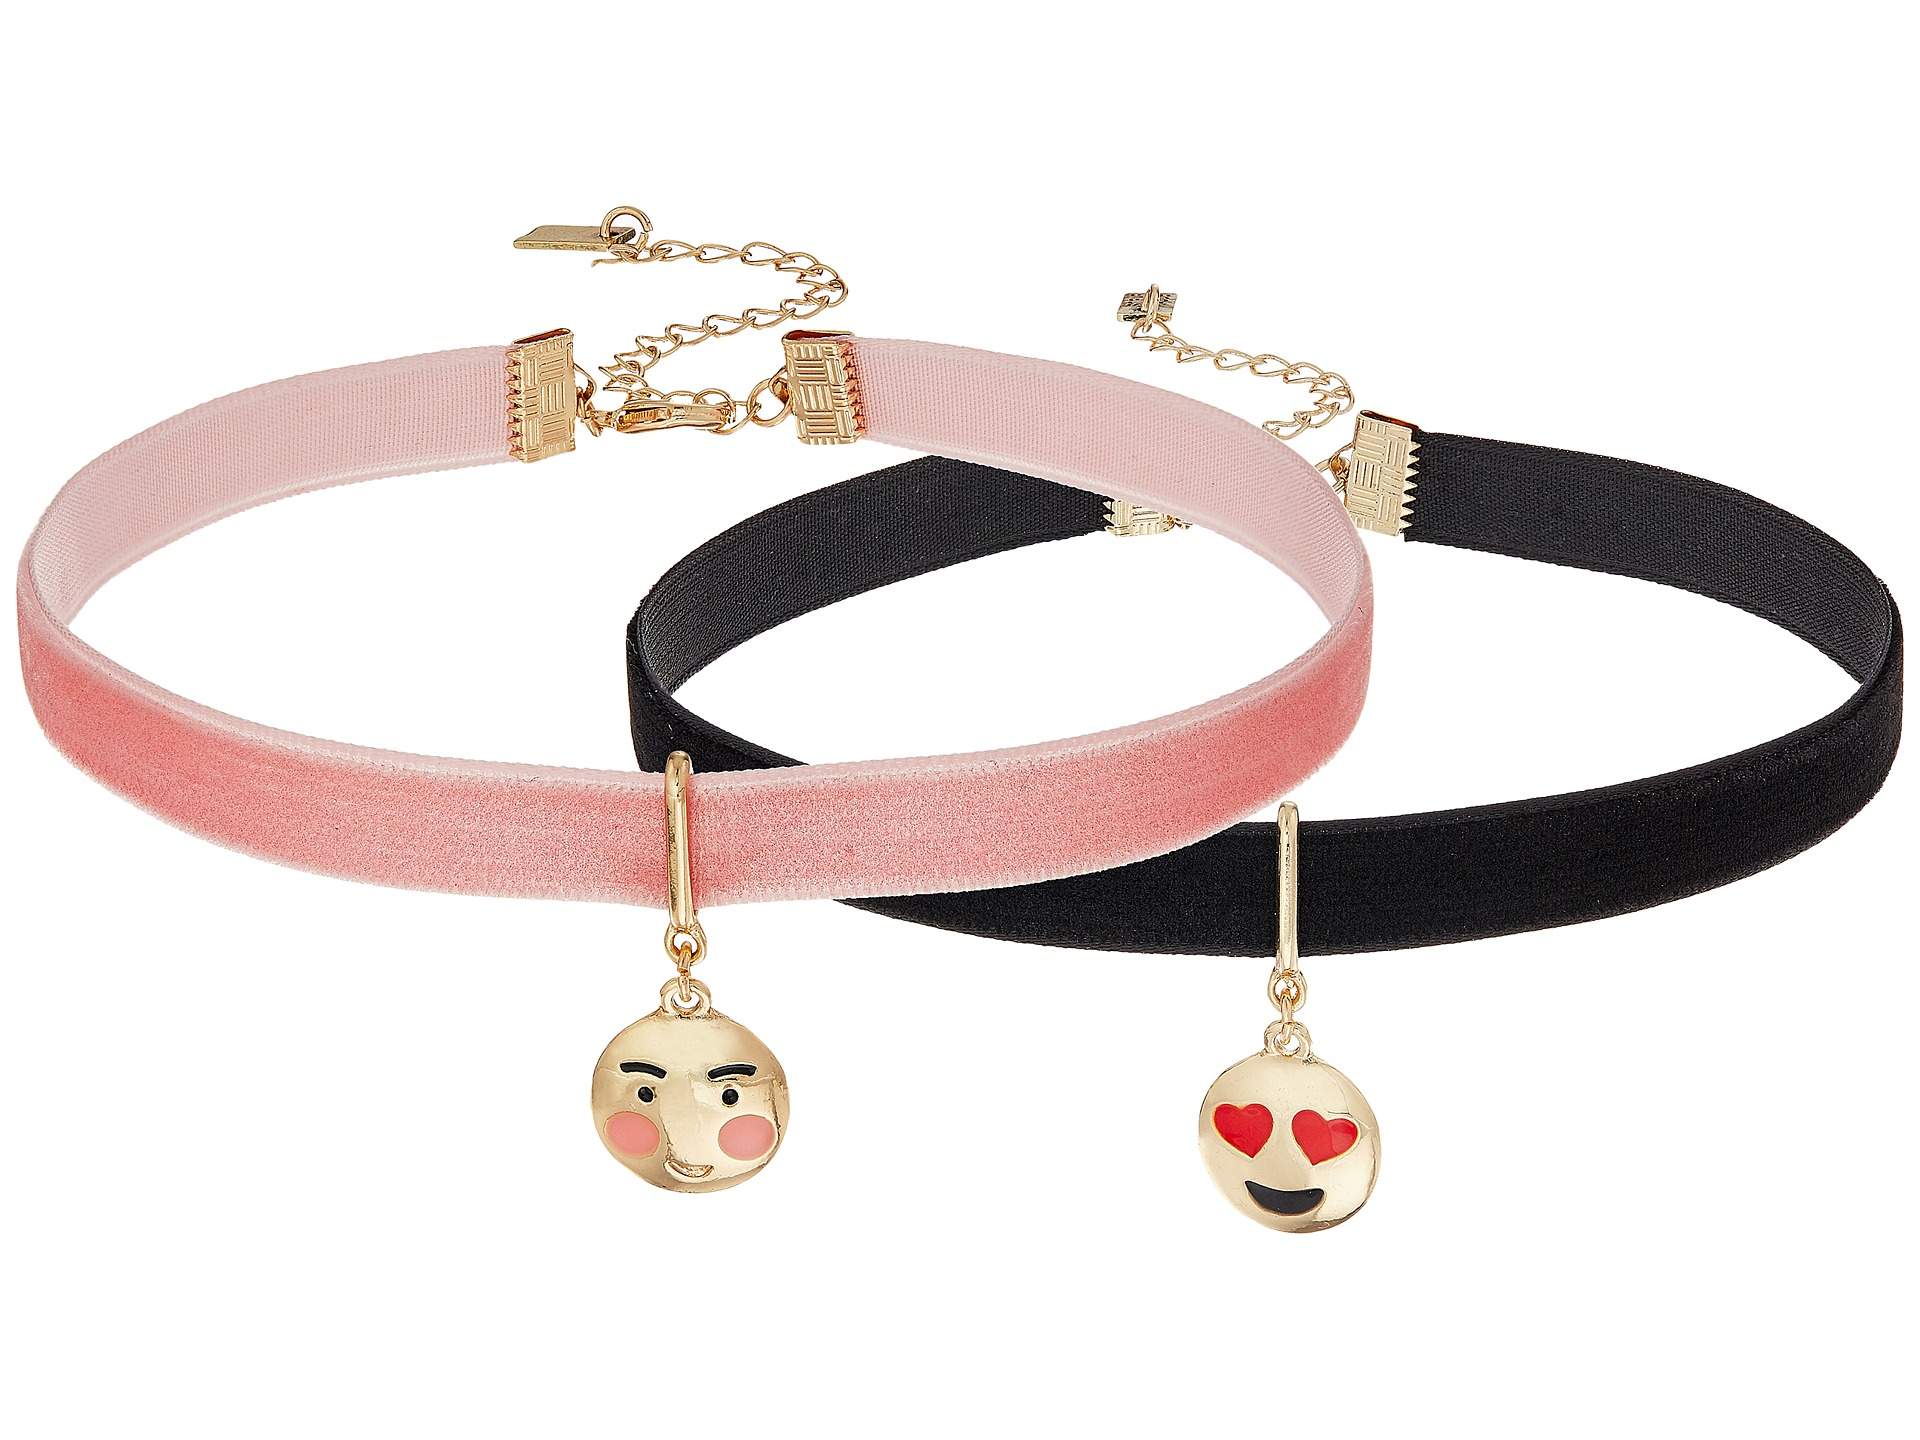 Steve Madden 2 Piece Emoji Choker Necklace Set Heart/Blushing Face - Zappos.com Free Shipping ...